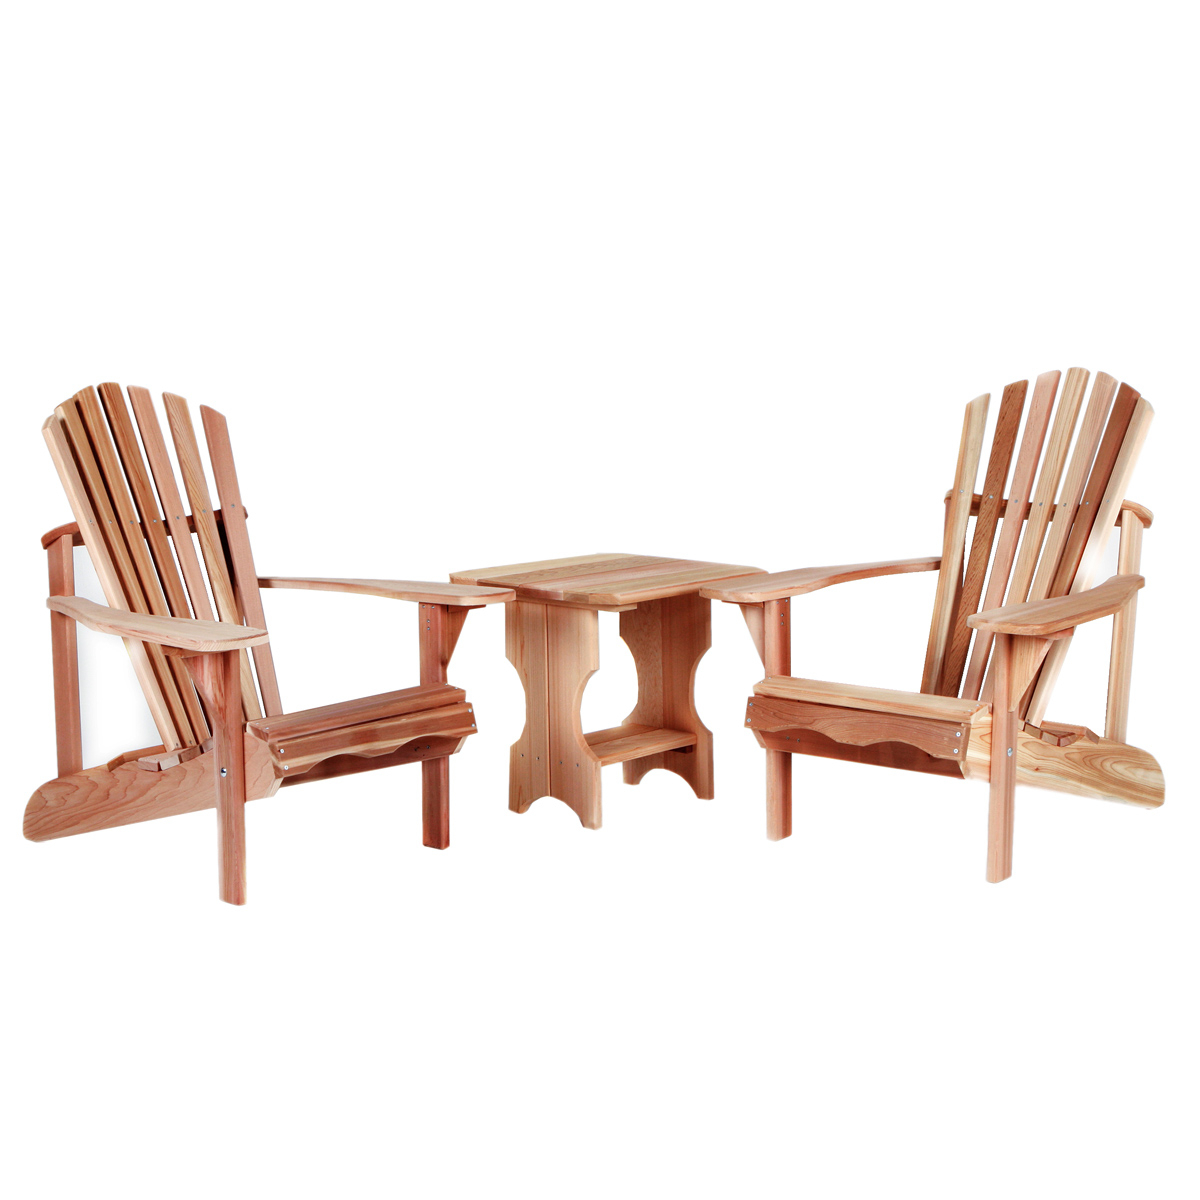 Wicker Tete A Tete Benches Within Most Up To Date All Things Cedar Canada Patio Furniture Adirondack Chairs (View 11 of 30)